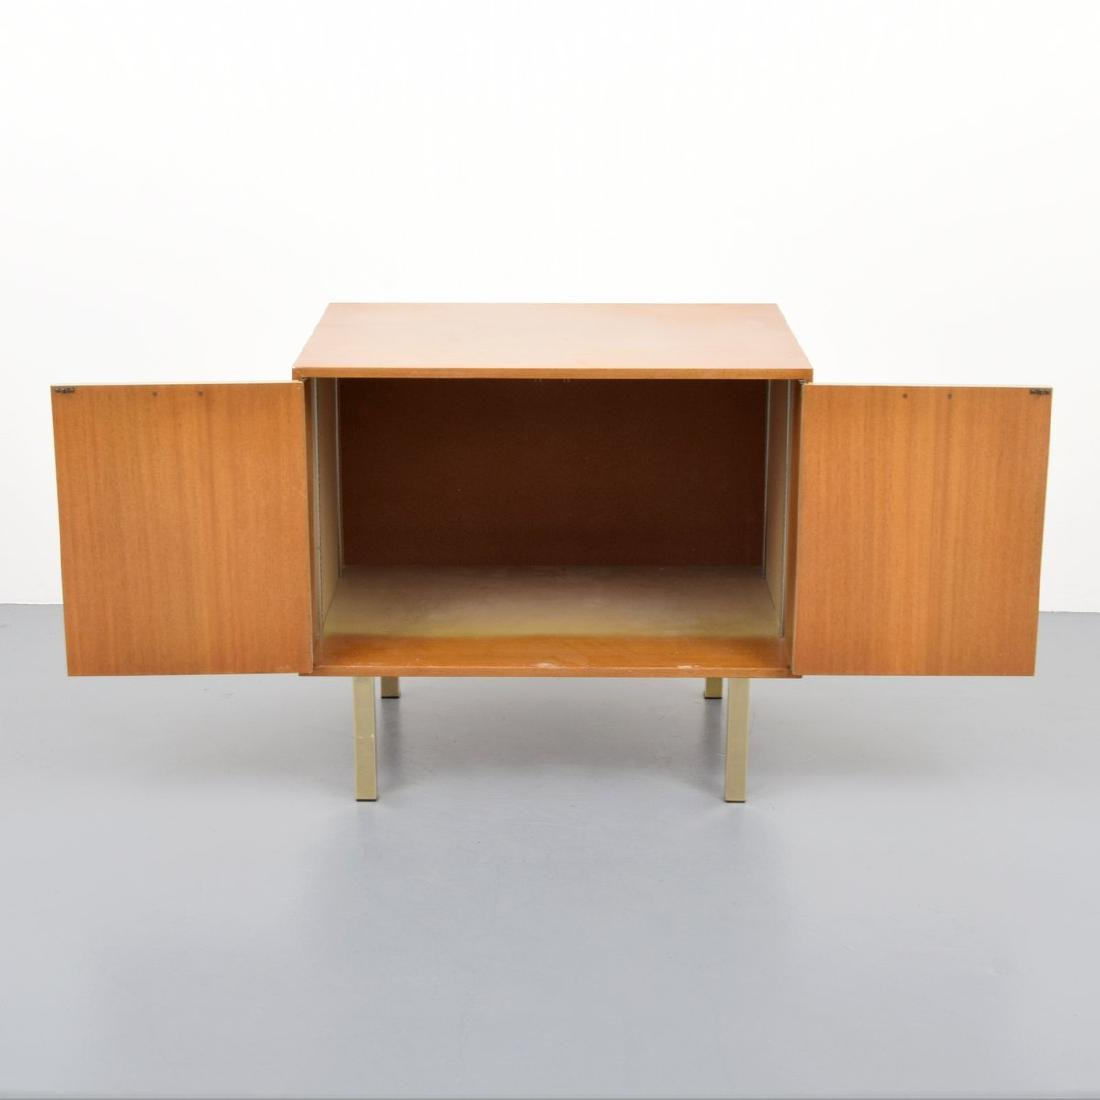 Harvey Probber Cabinet - 3